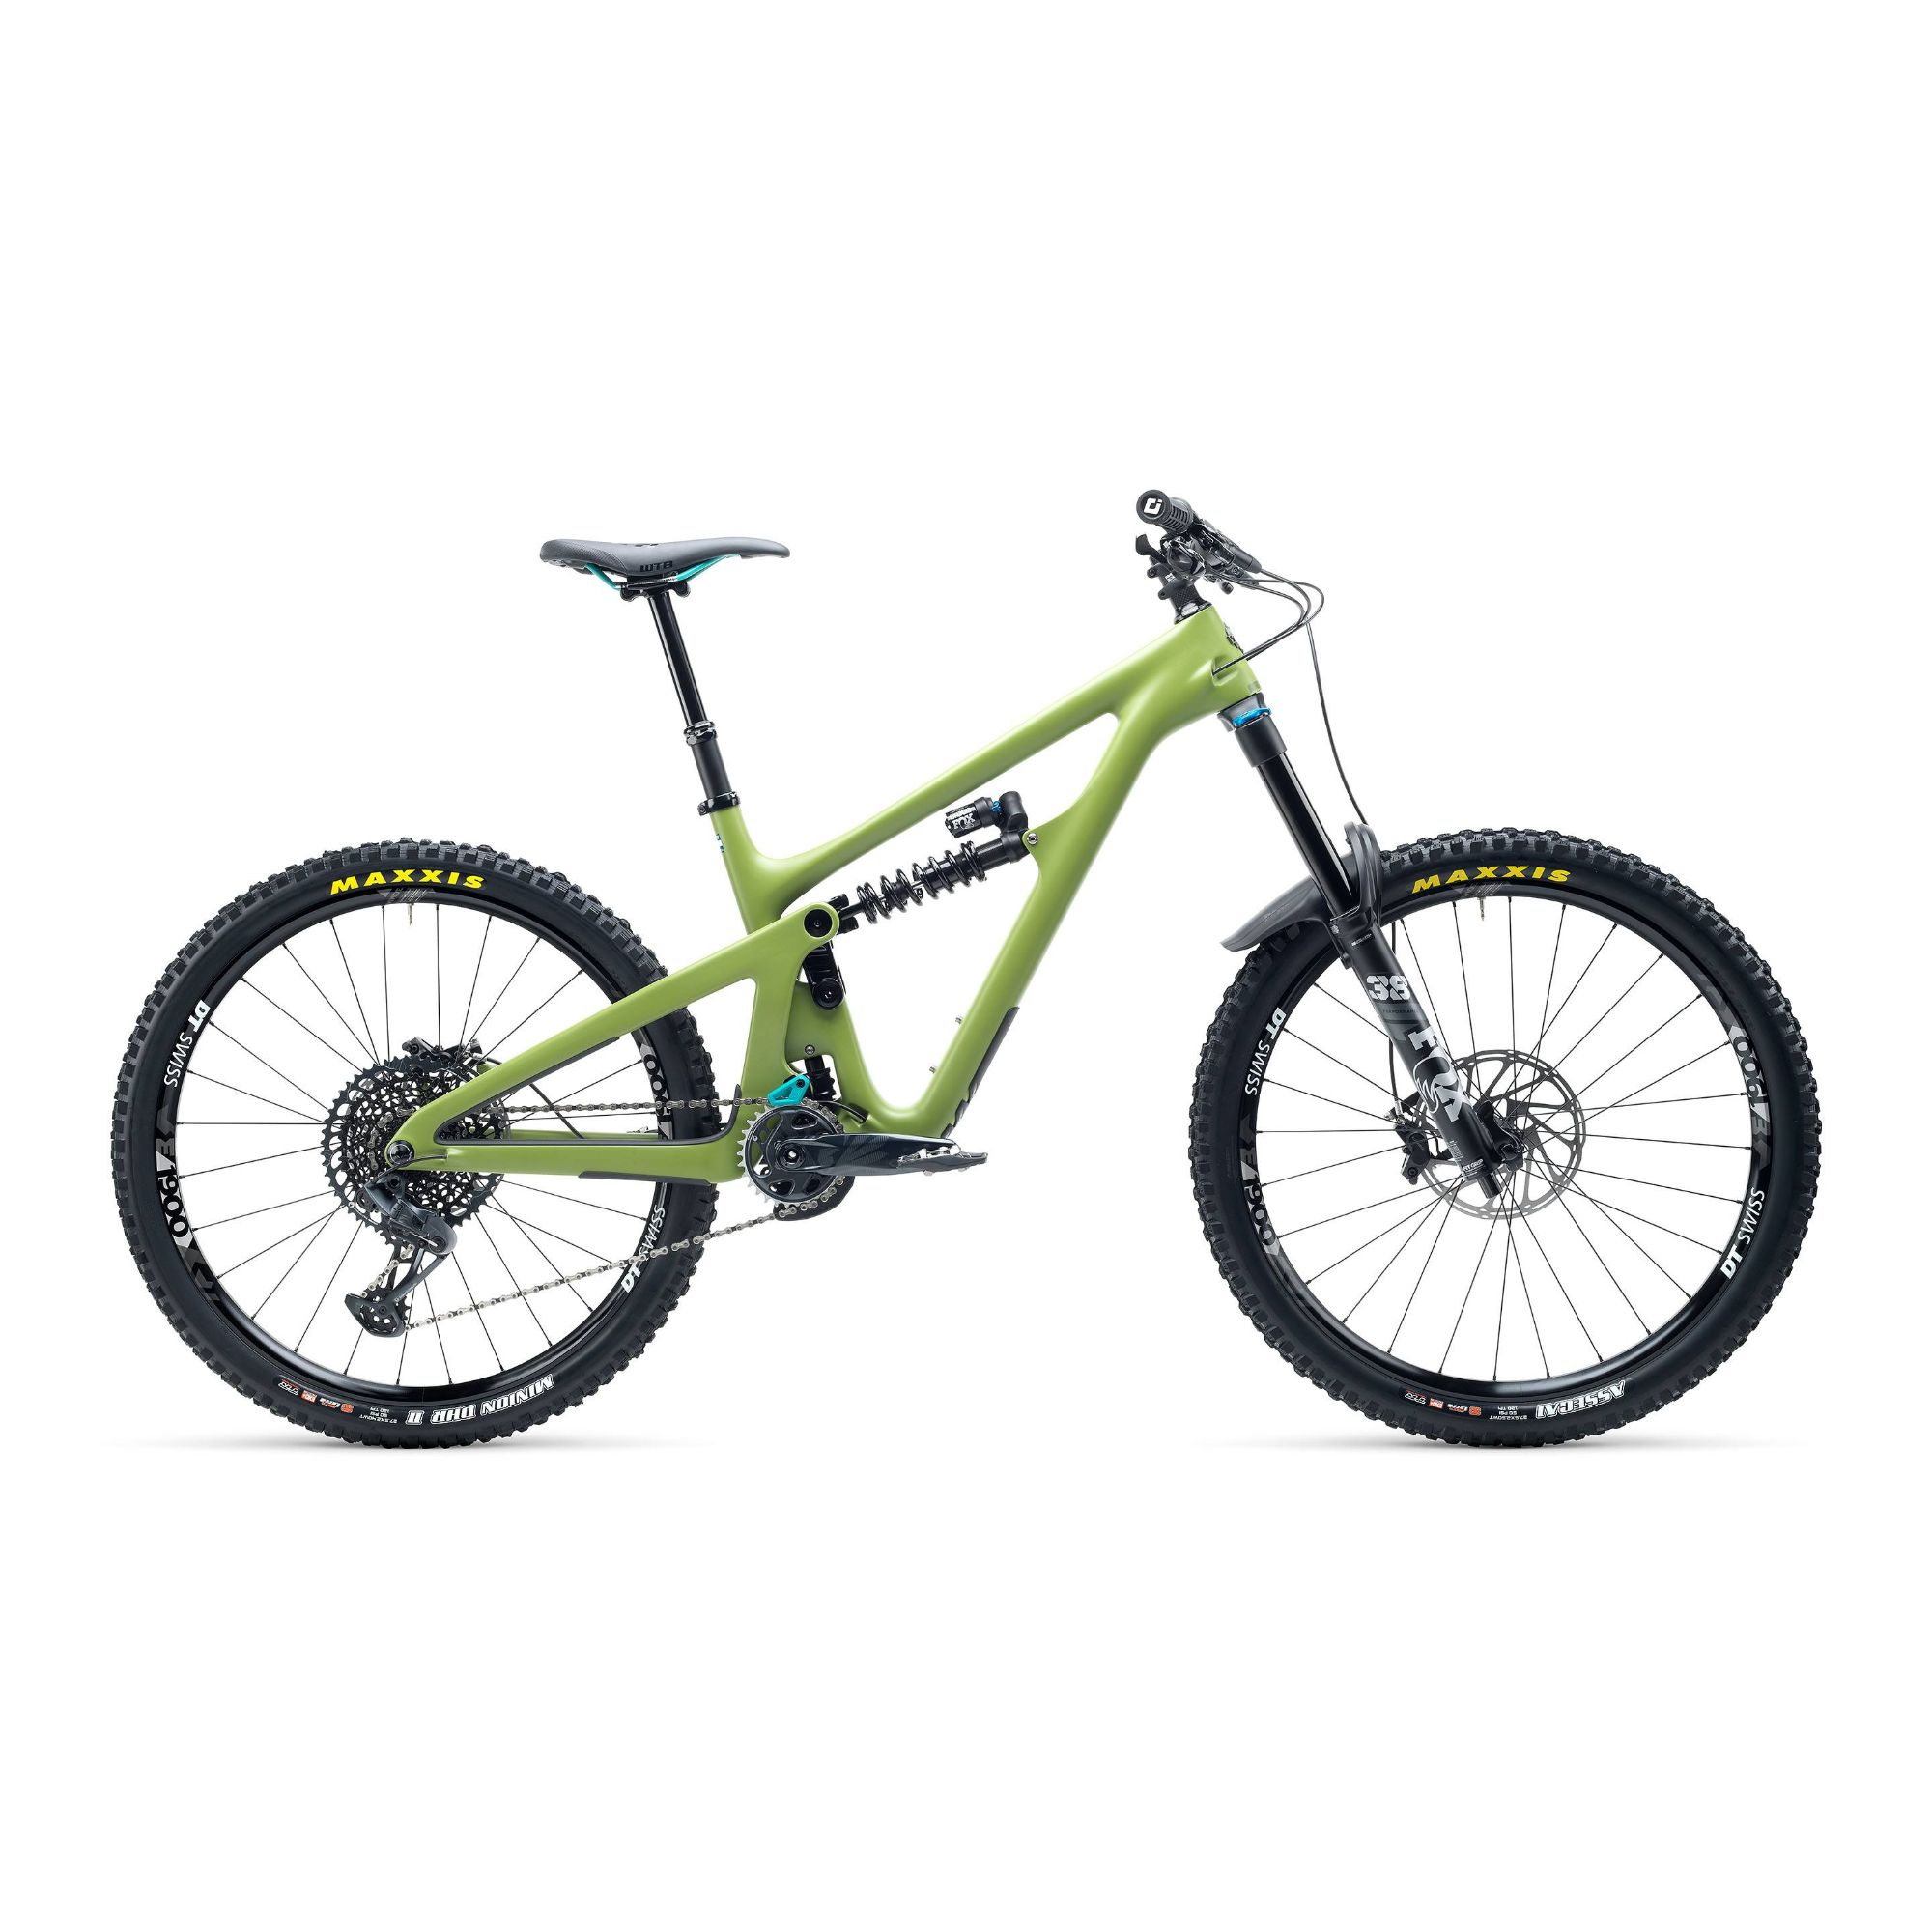 Yeti SB165 C Series C2 27.5 GX Carbon Mountain Bike 2021 Moss Green